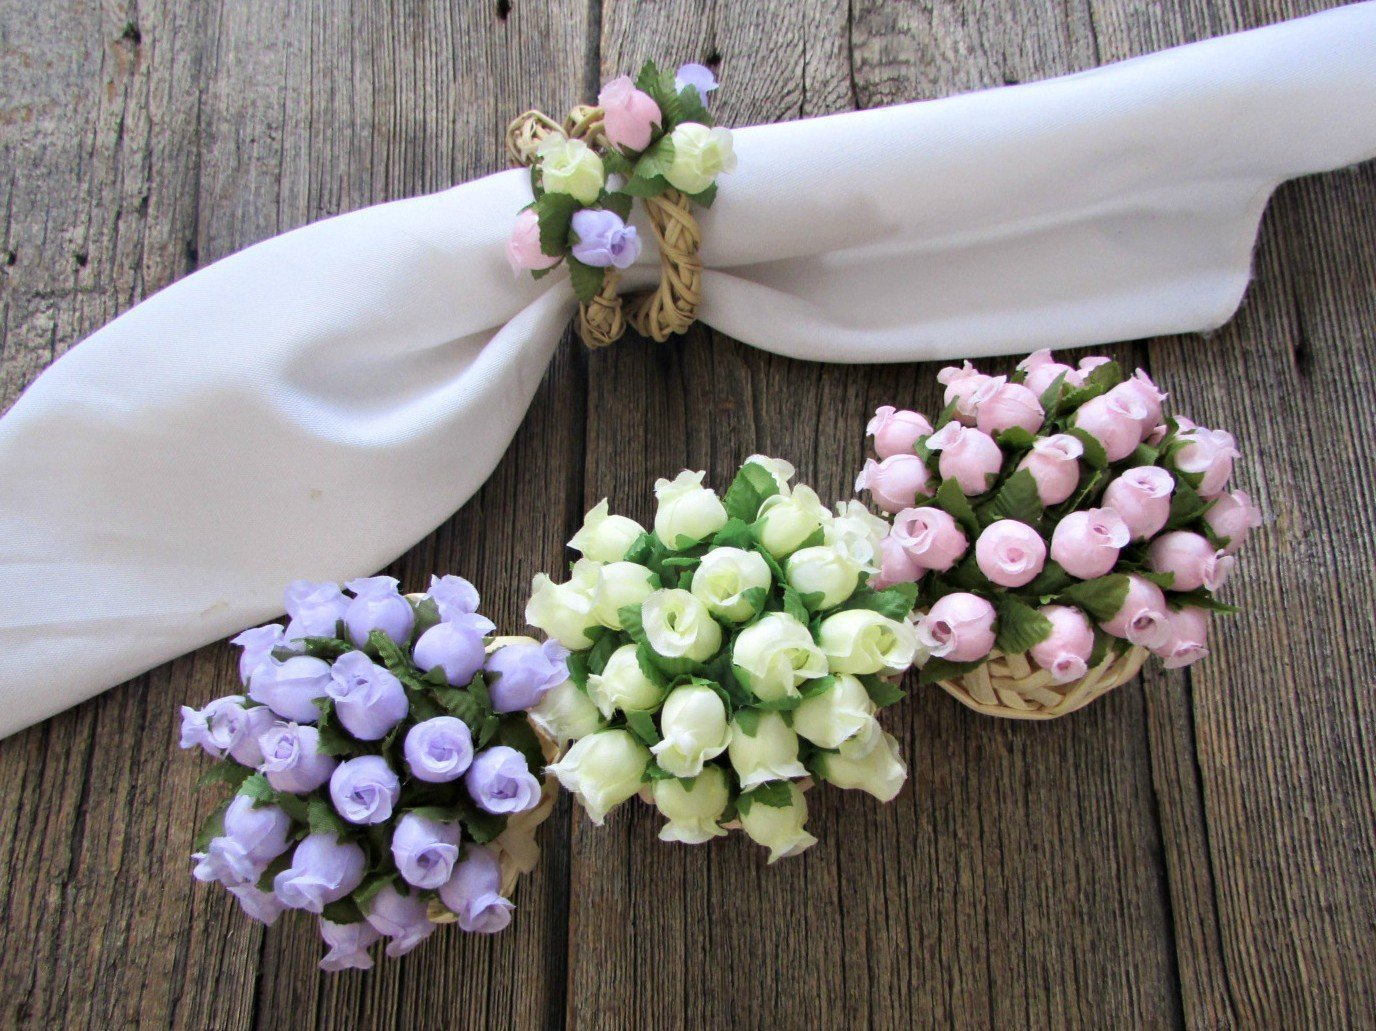 3 Flower Ball Centerpieces- Pastel Pink Purple Yellow Rose- Wicker Ball- Wedding Table Decoration- Spring Party Decor